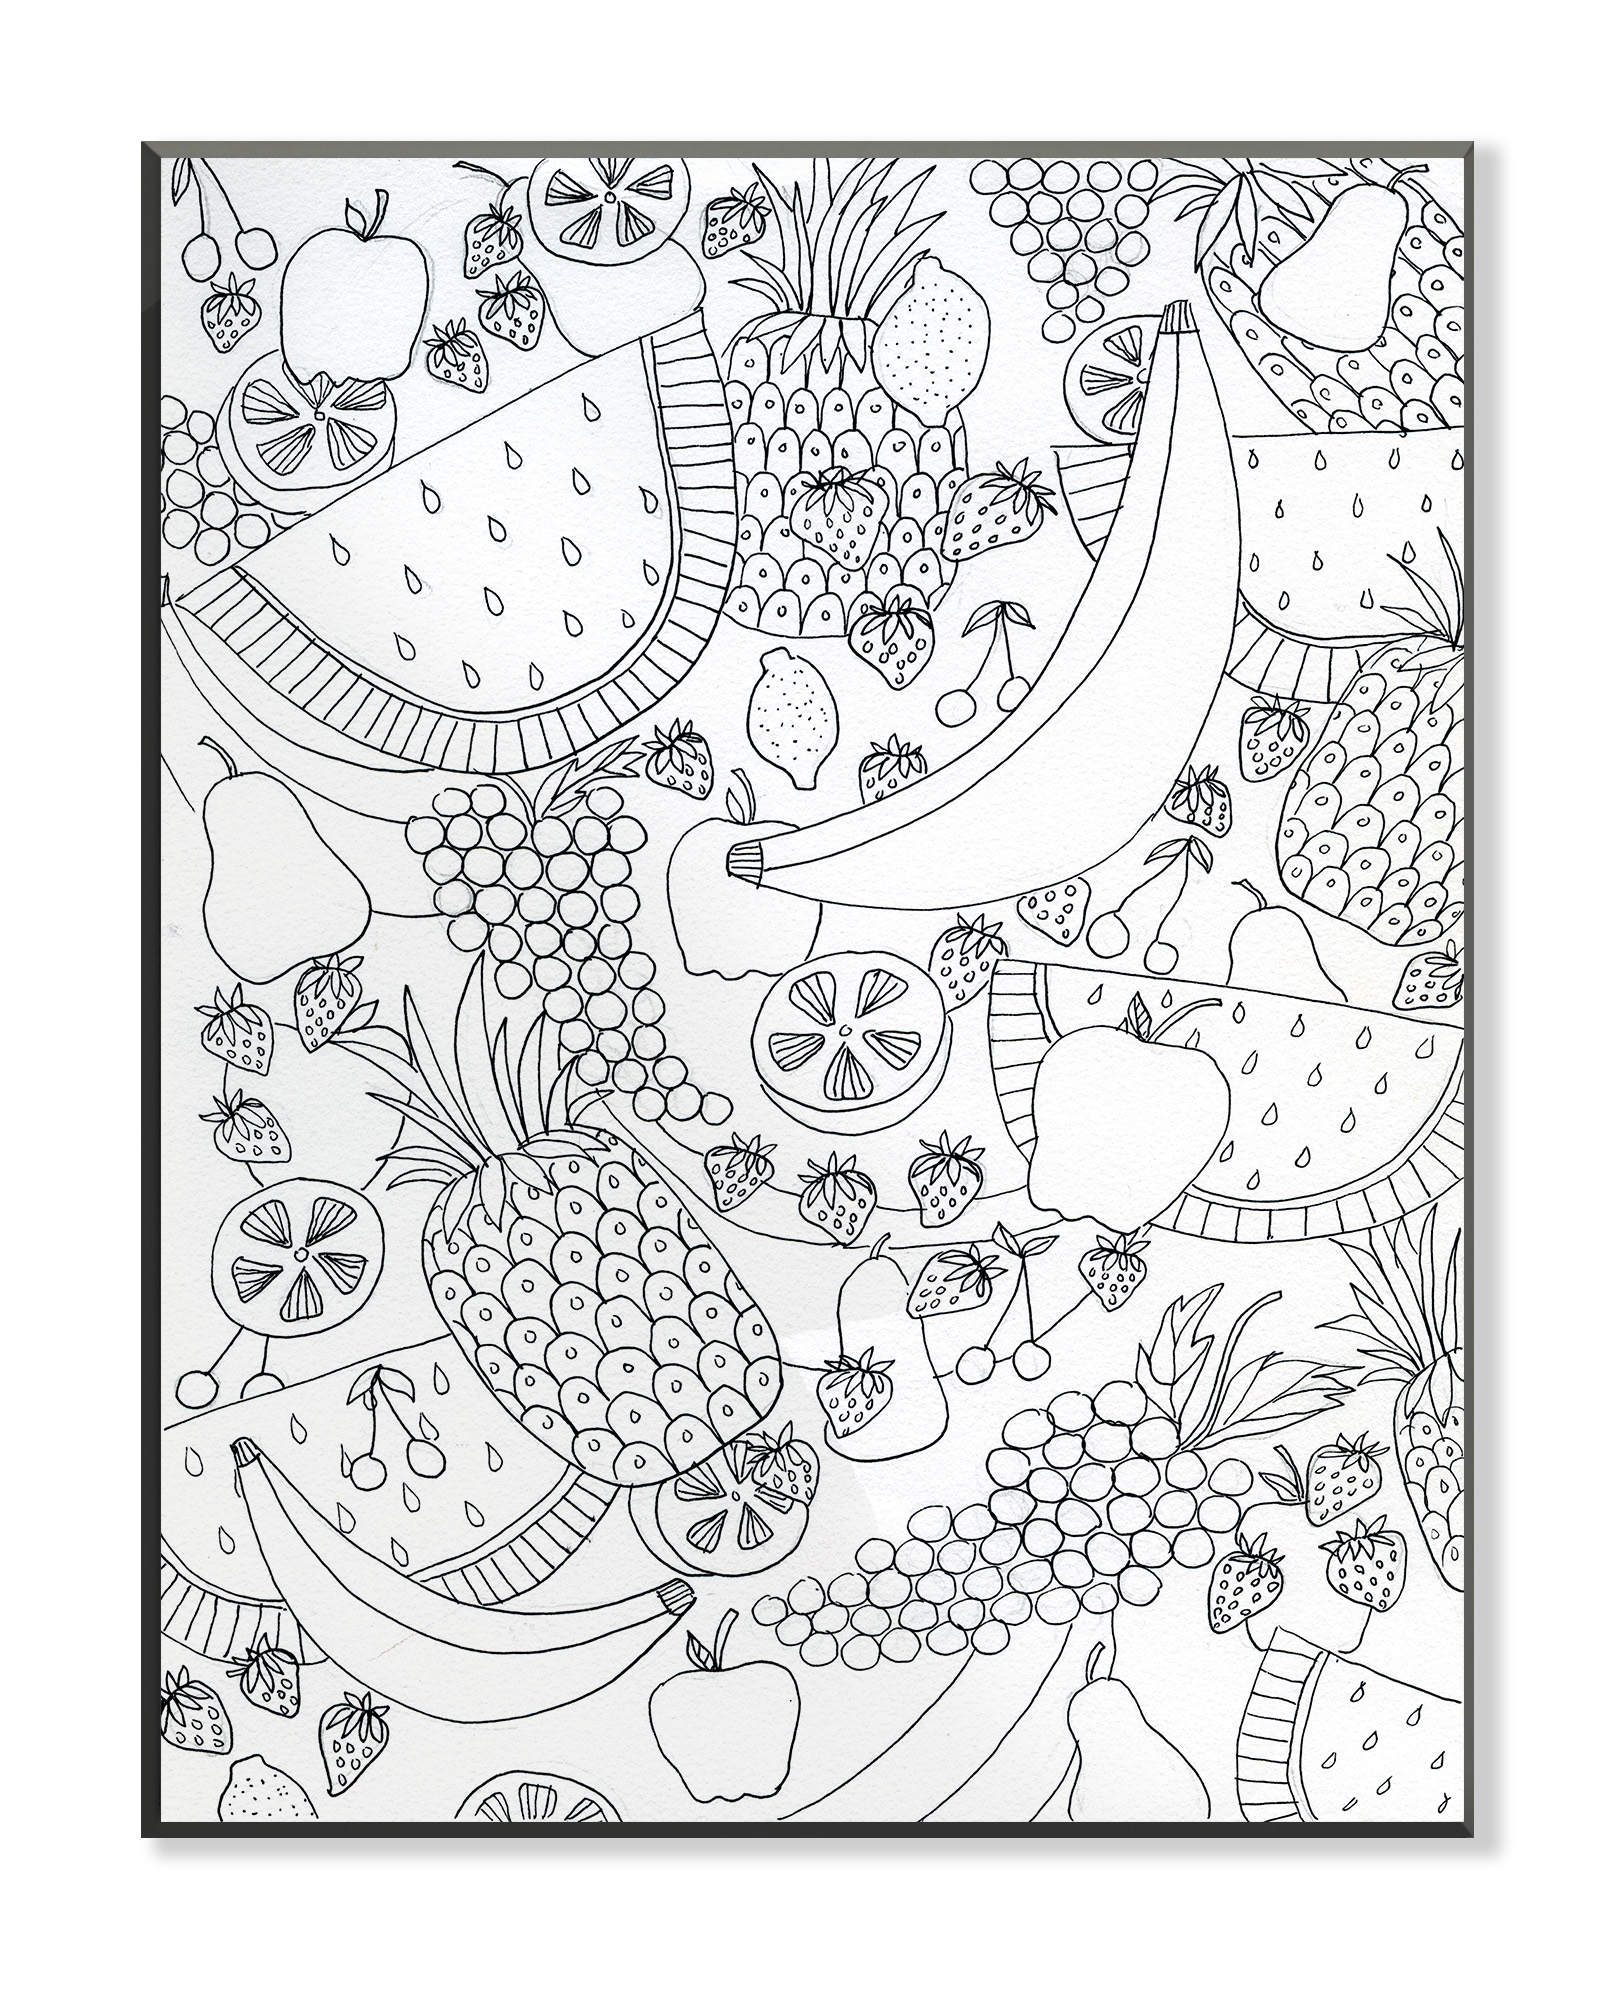 The Stupell Home Decor Collection Floral Topiary DIY Coloring Wall Plaque